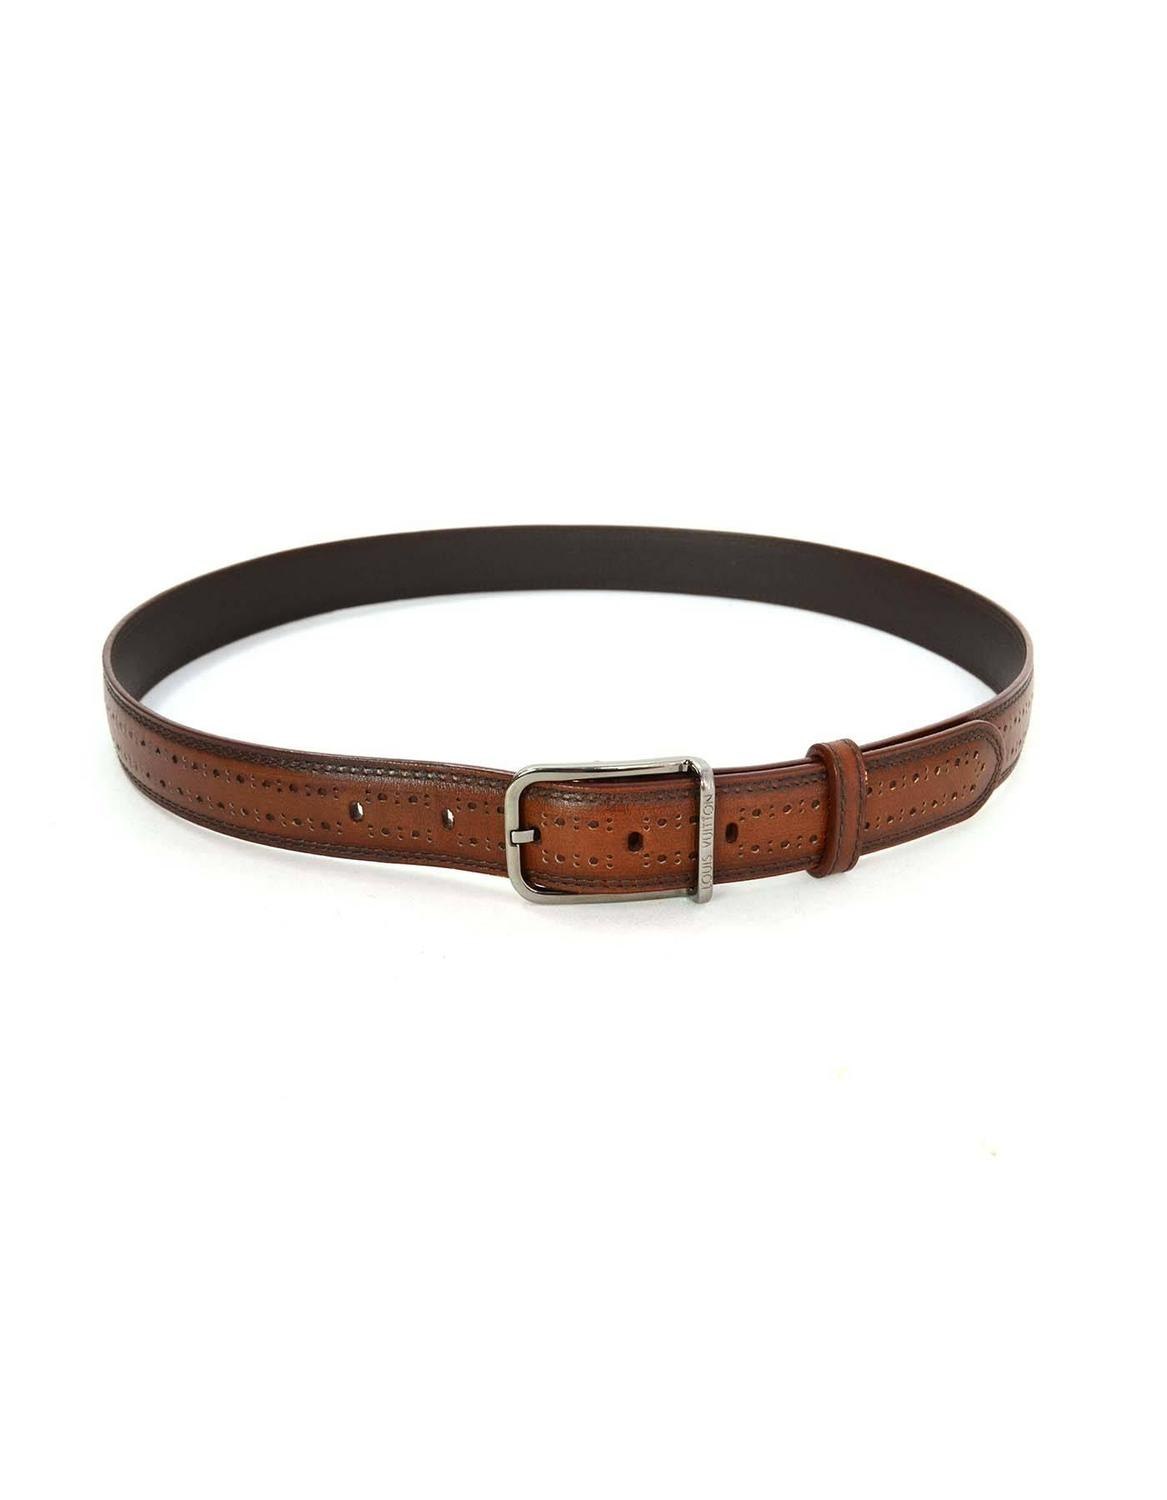 louis vuitton brown leather belt sz 90 for sale at 1stdibs